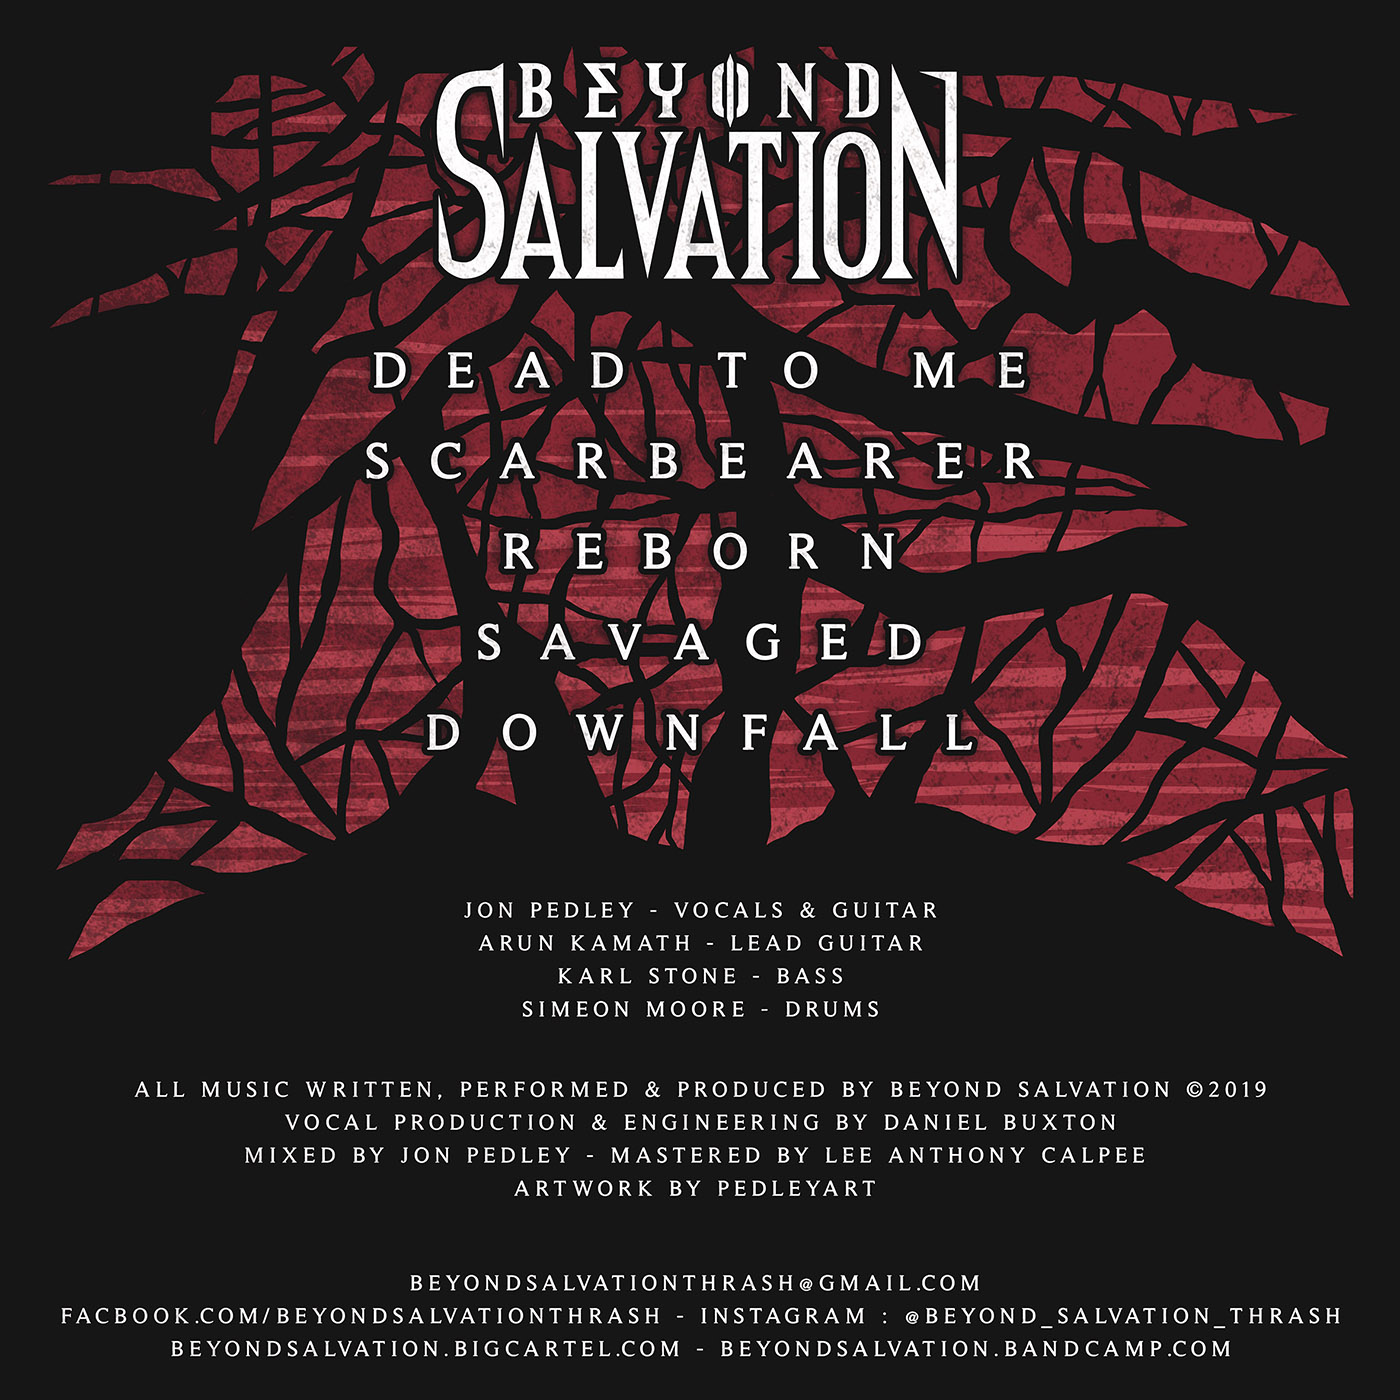 Beyond Salvation Scarbearer Back Cover.jpg